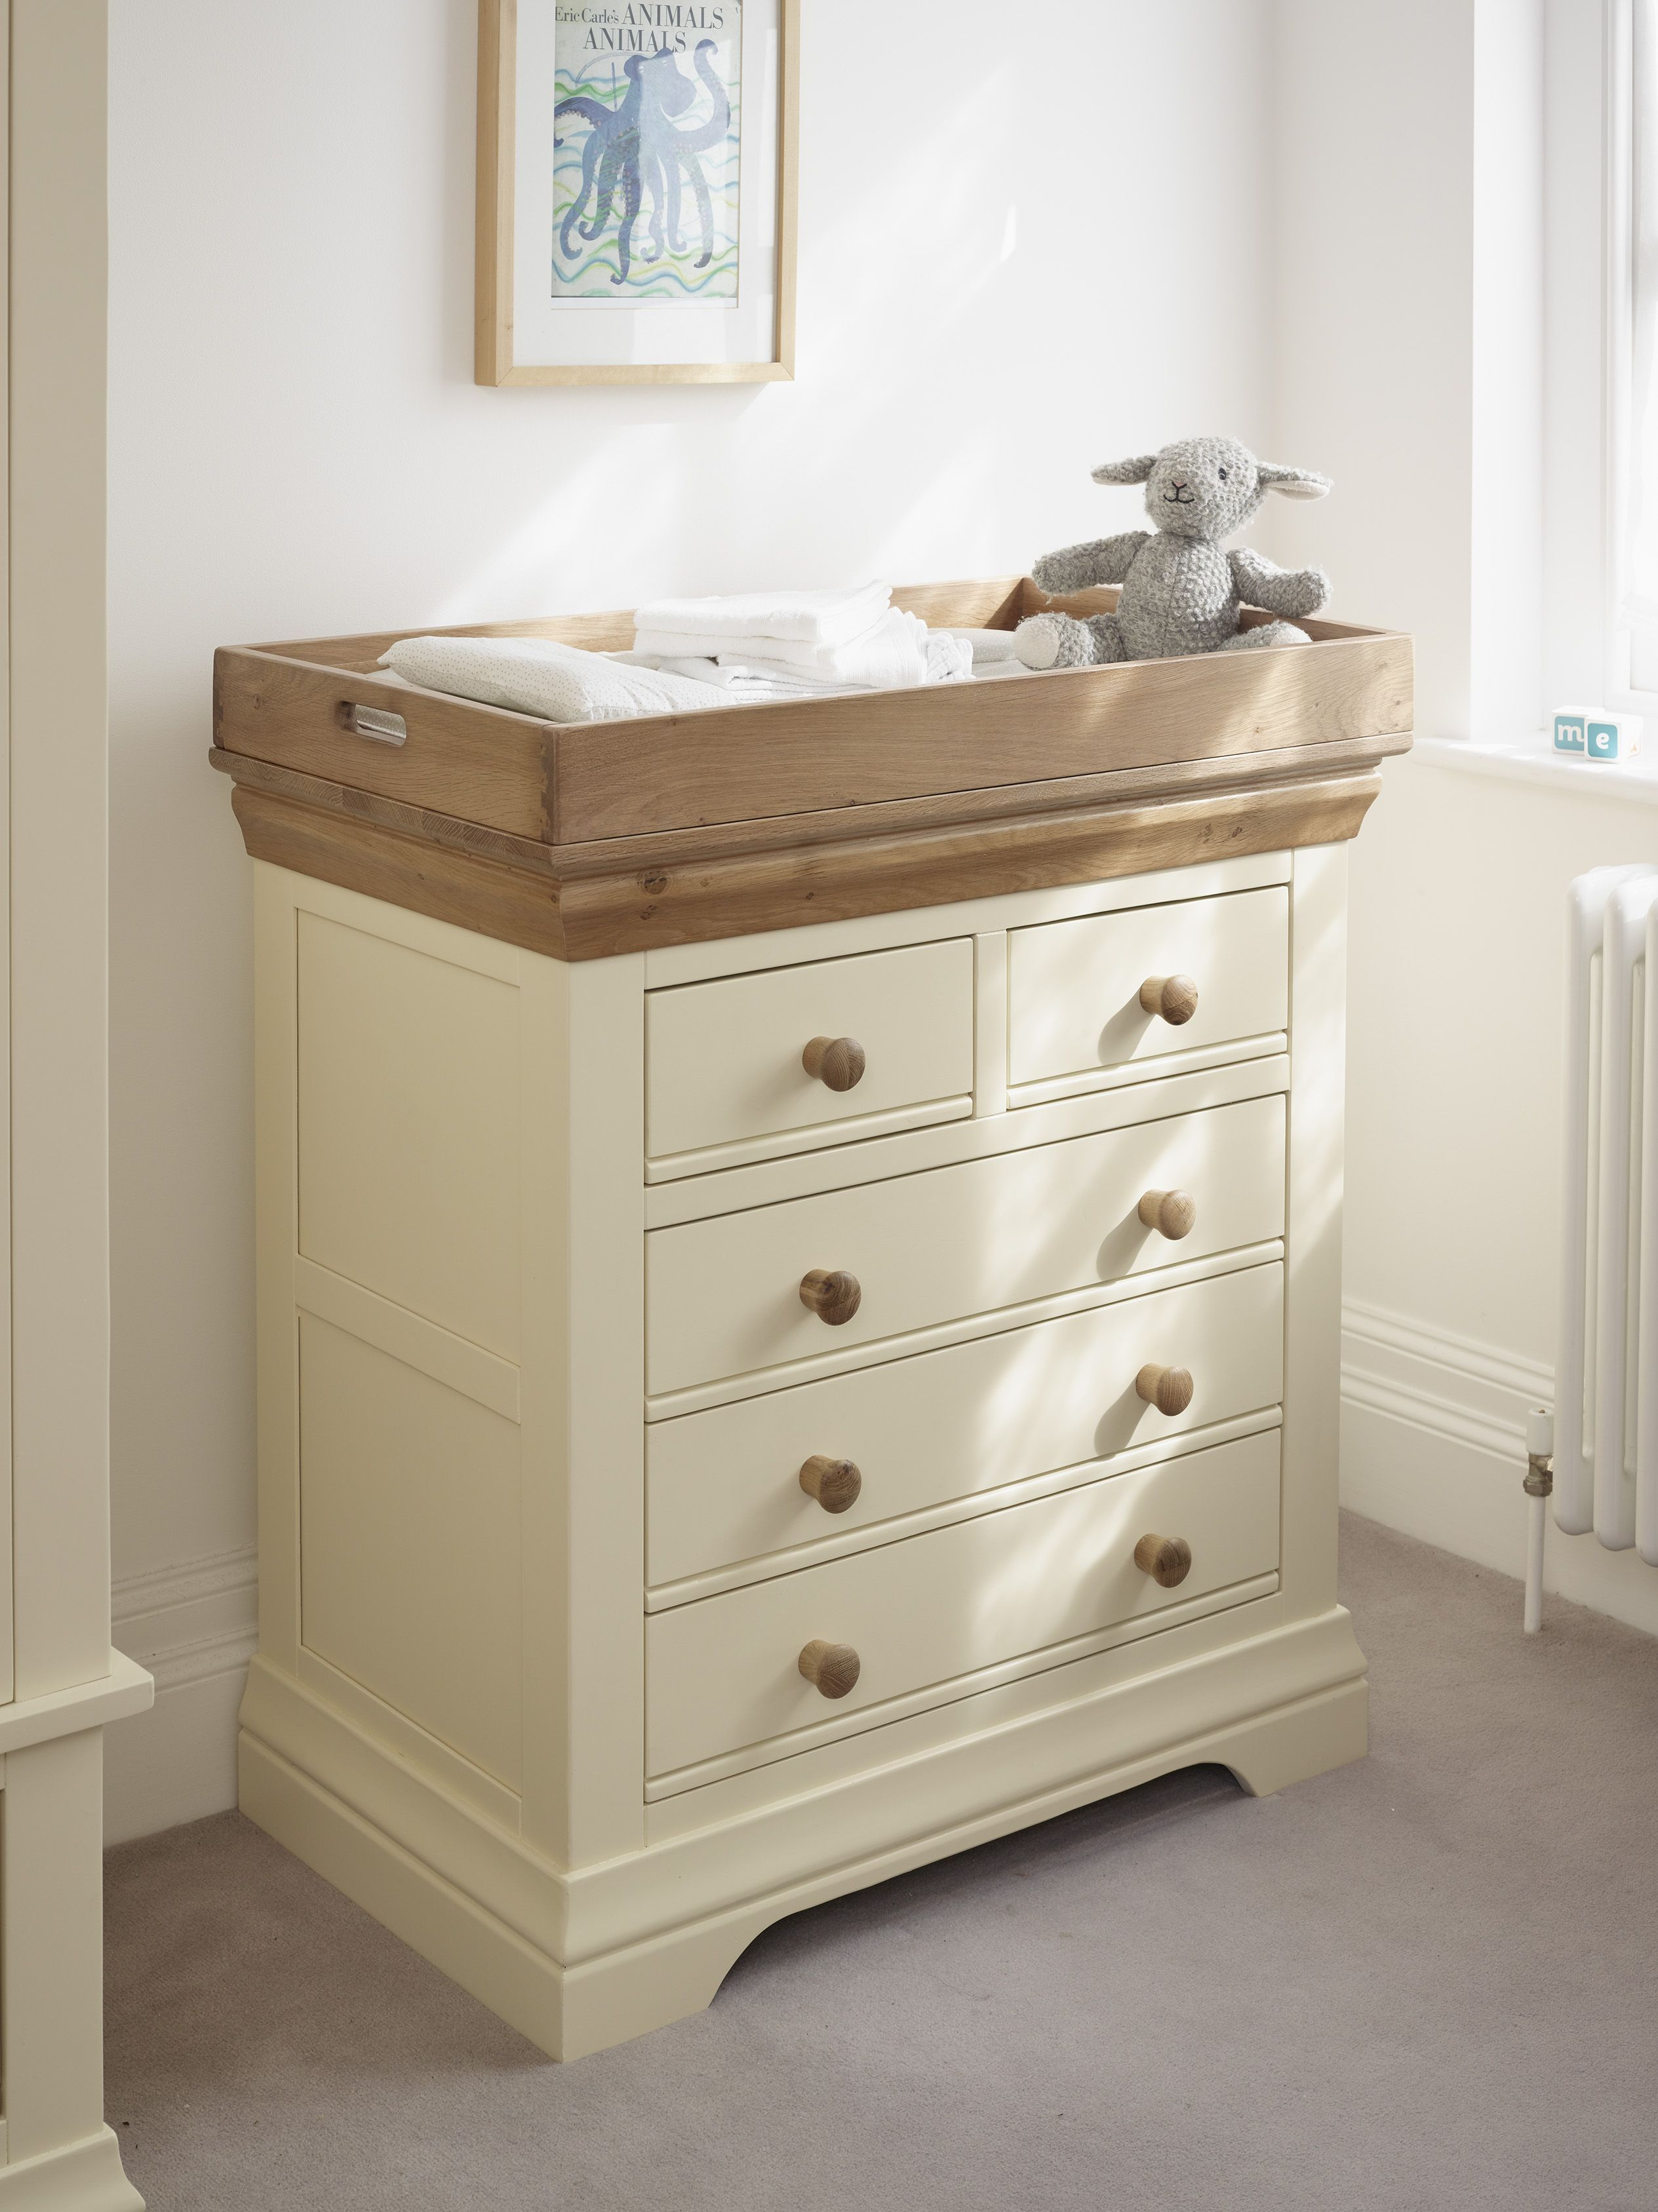 We Ve Designed Beautiful Versatile And Quality Nursery Furniture That Is Built To Last